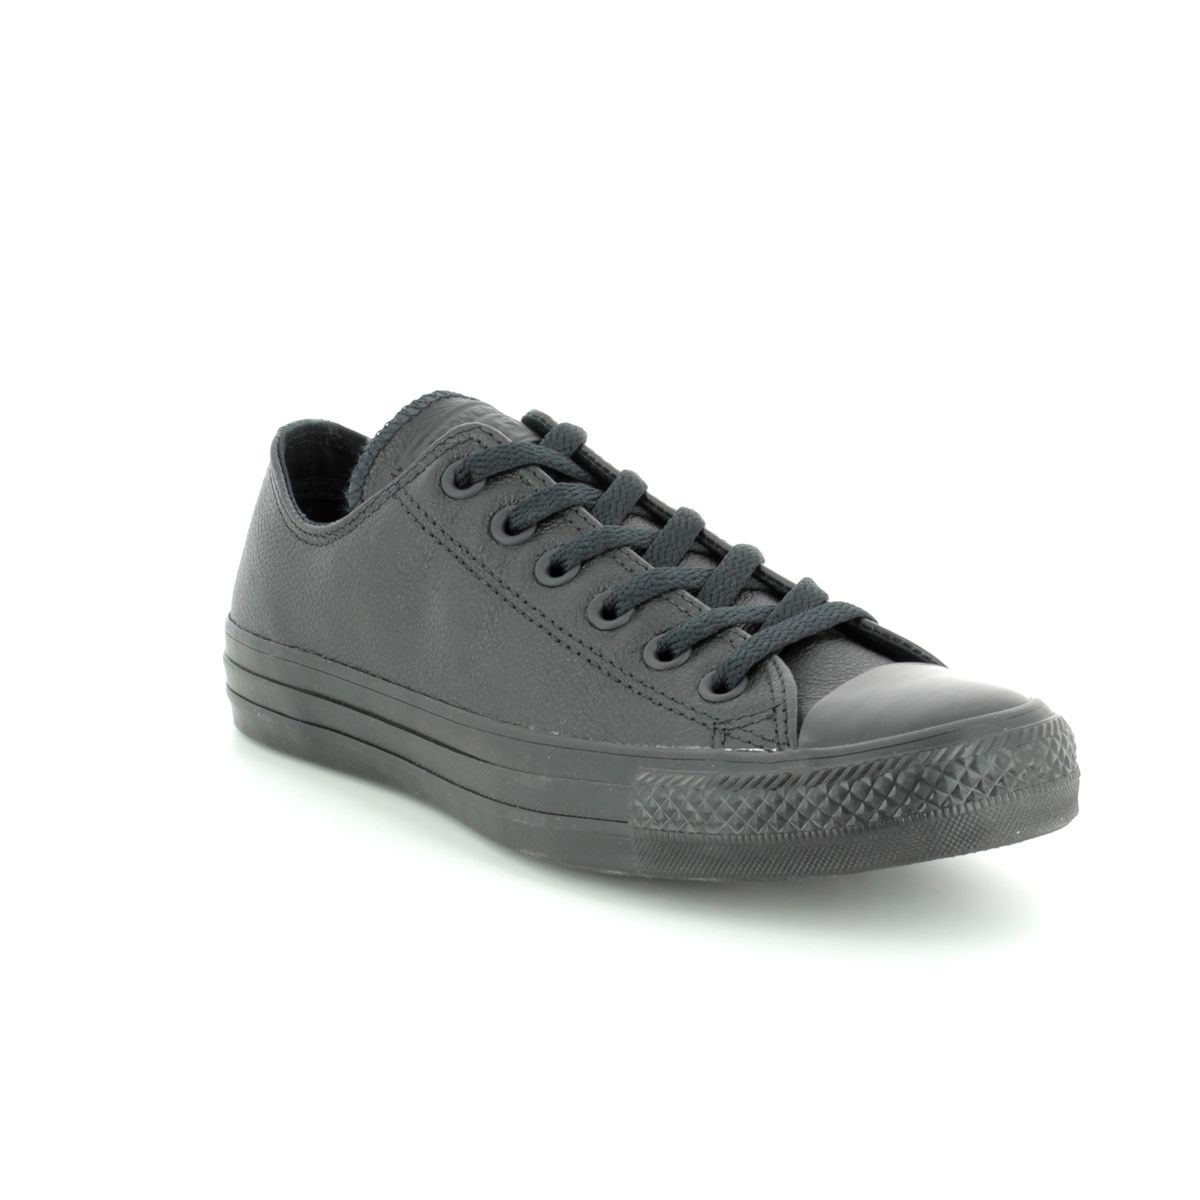 Converse Trainers - Black - 135253C Chuck Taylor All Star OX MONO e6ffd1014